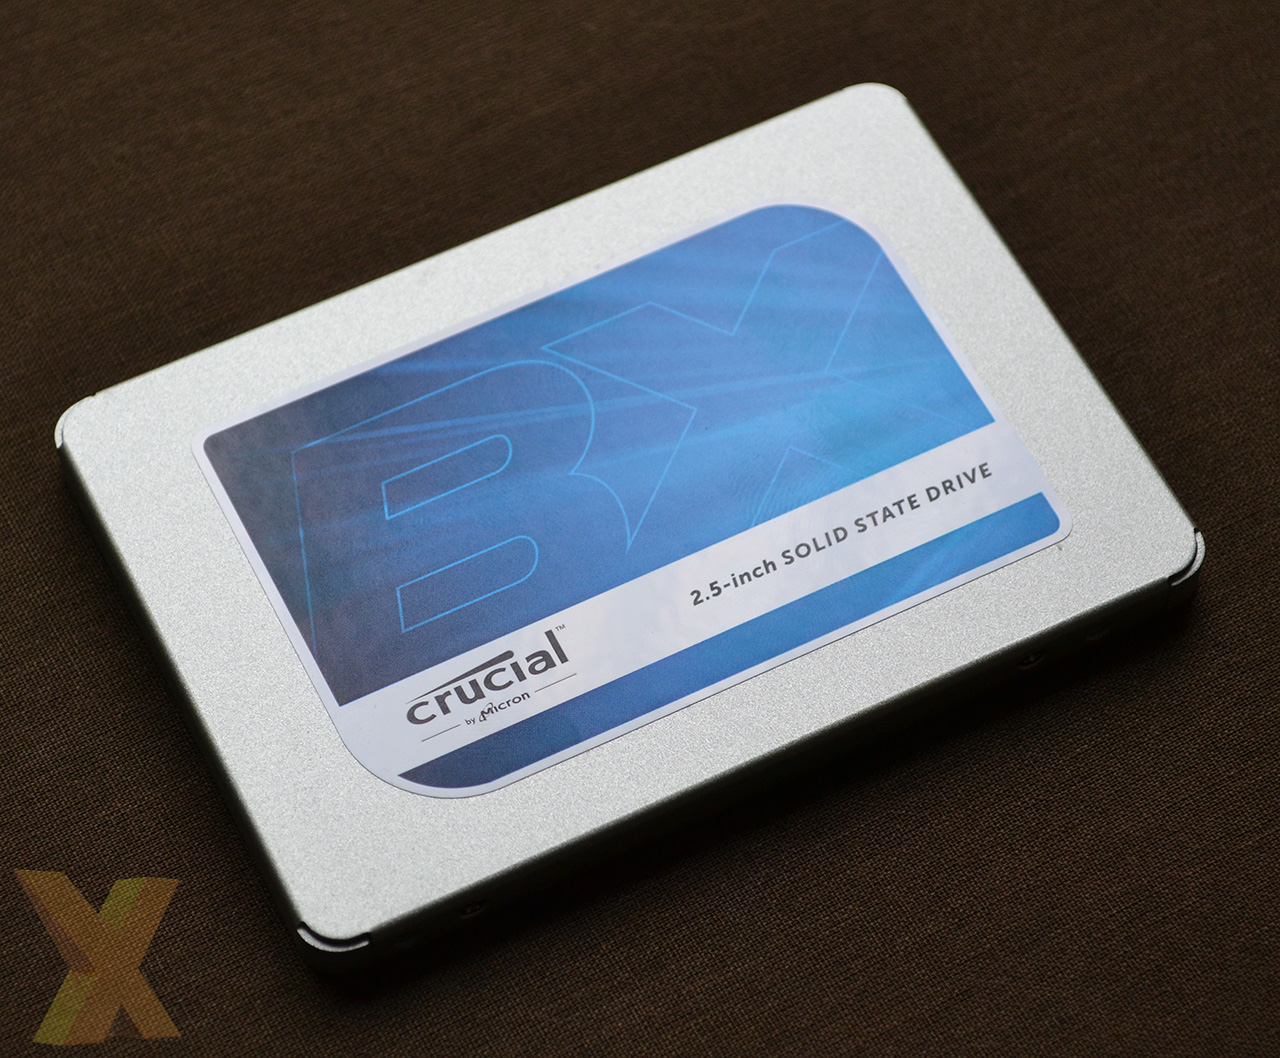 Review: Crucial BX300 (480GB) - Storage - HEXUS net